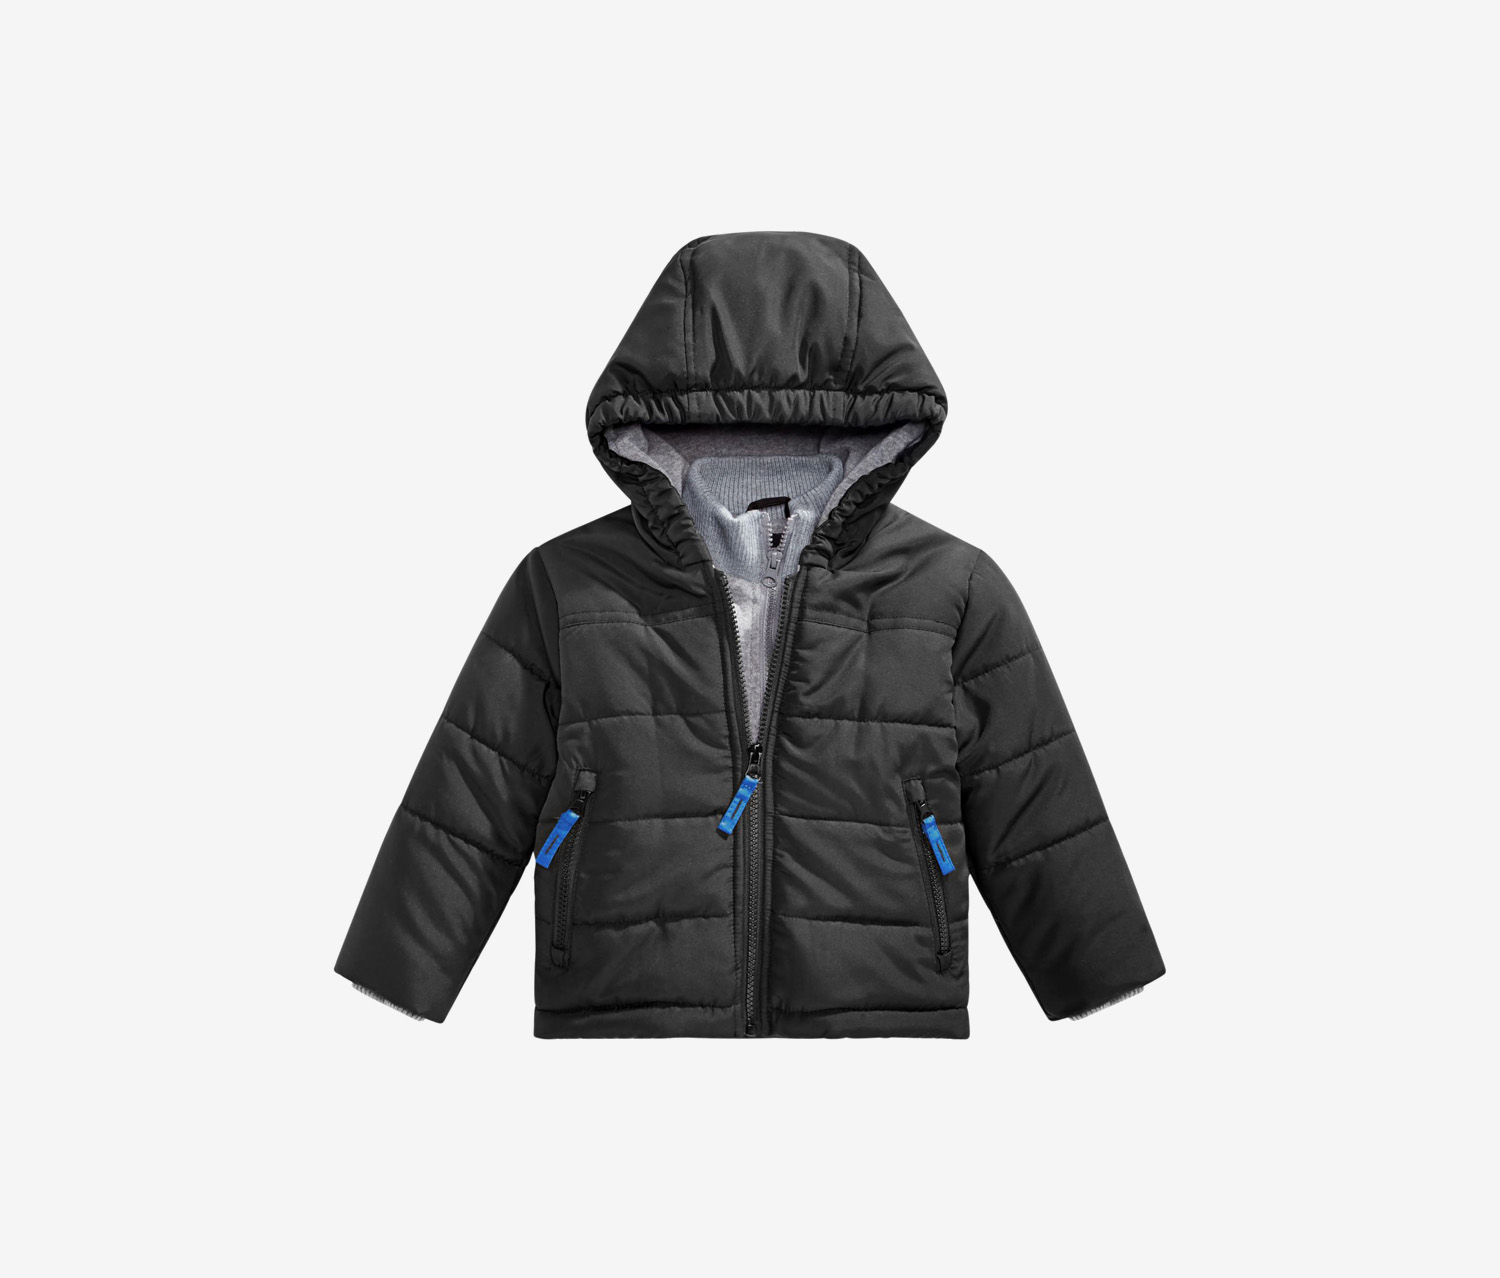 Baby Boys Hooded Layered-Look Puffer Jacket, Black